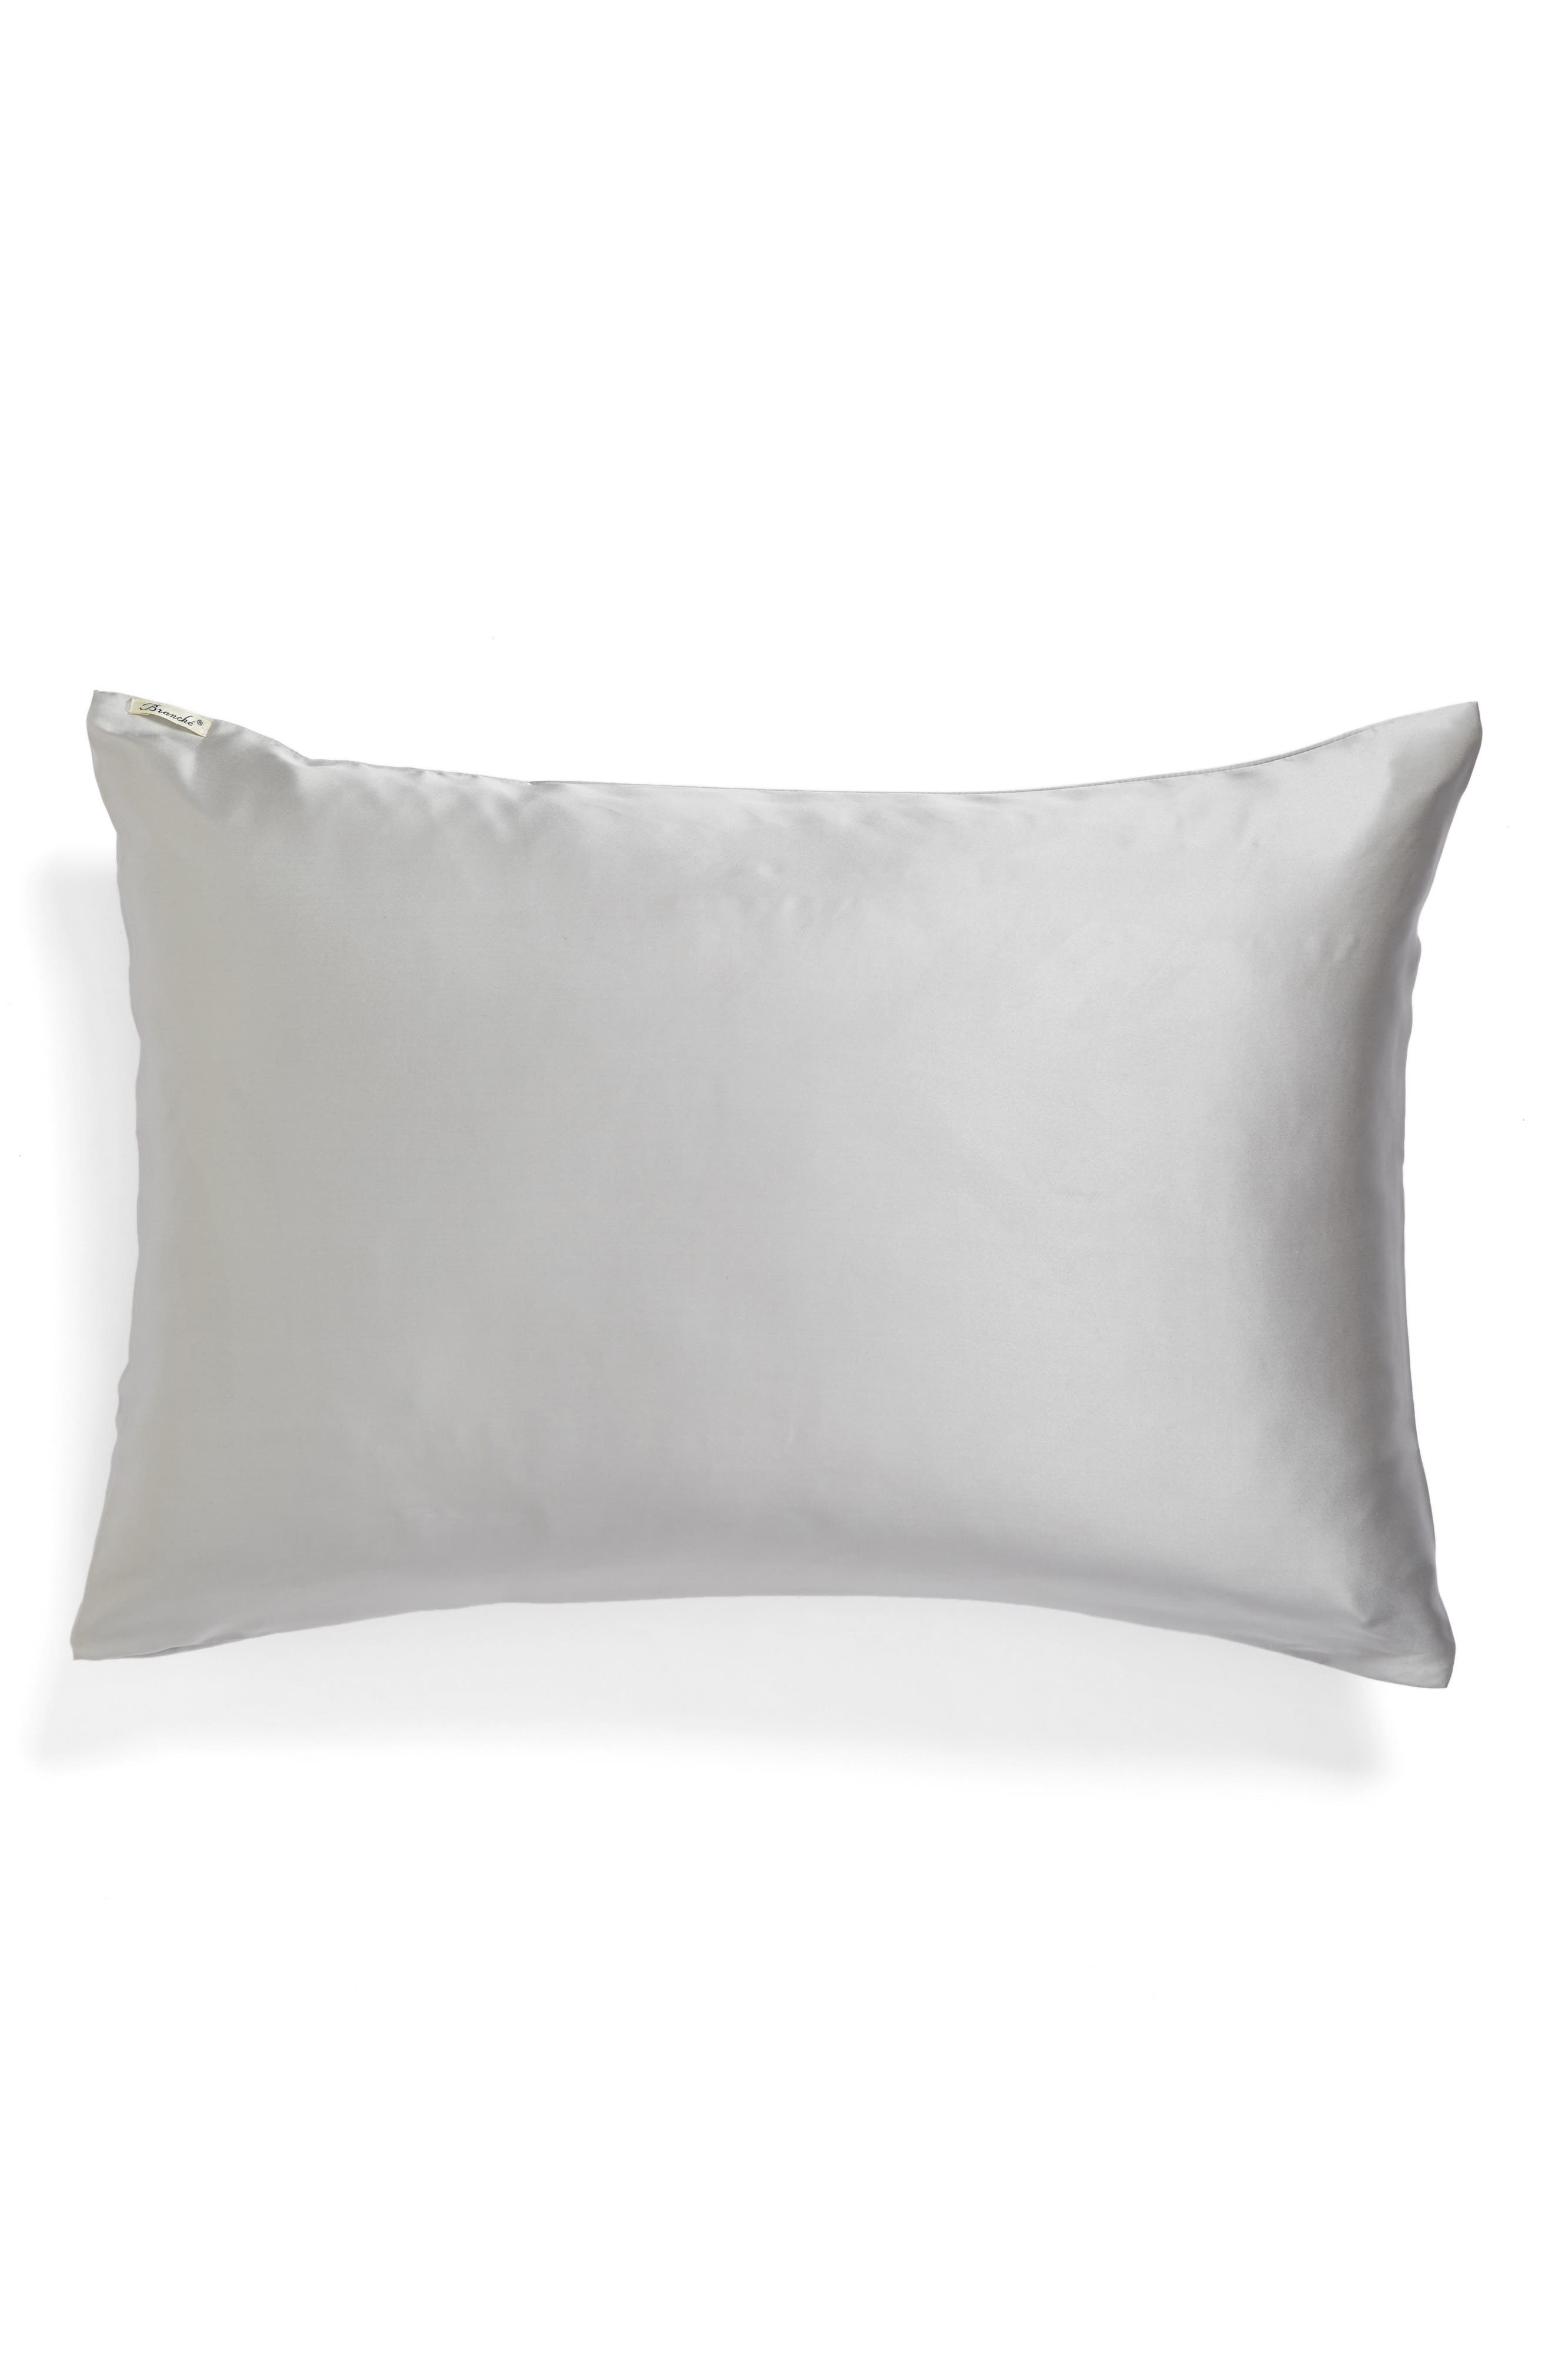 Alternate Image 1 Selected - Branché Beauty Silk Charmeuse Pillowcase